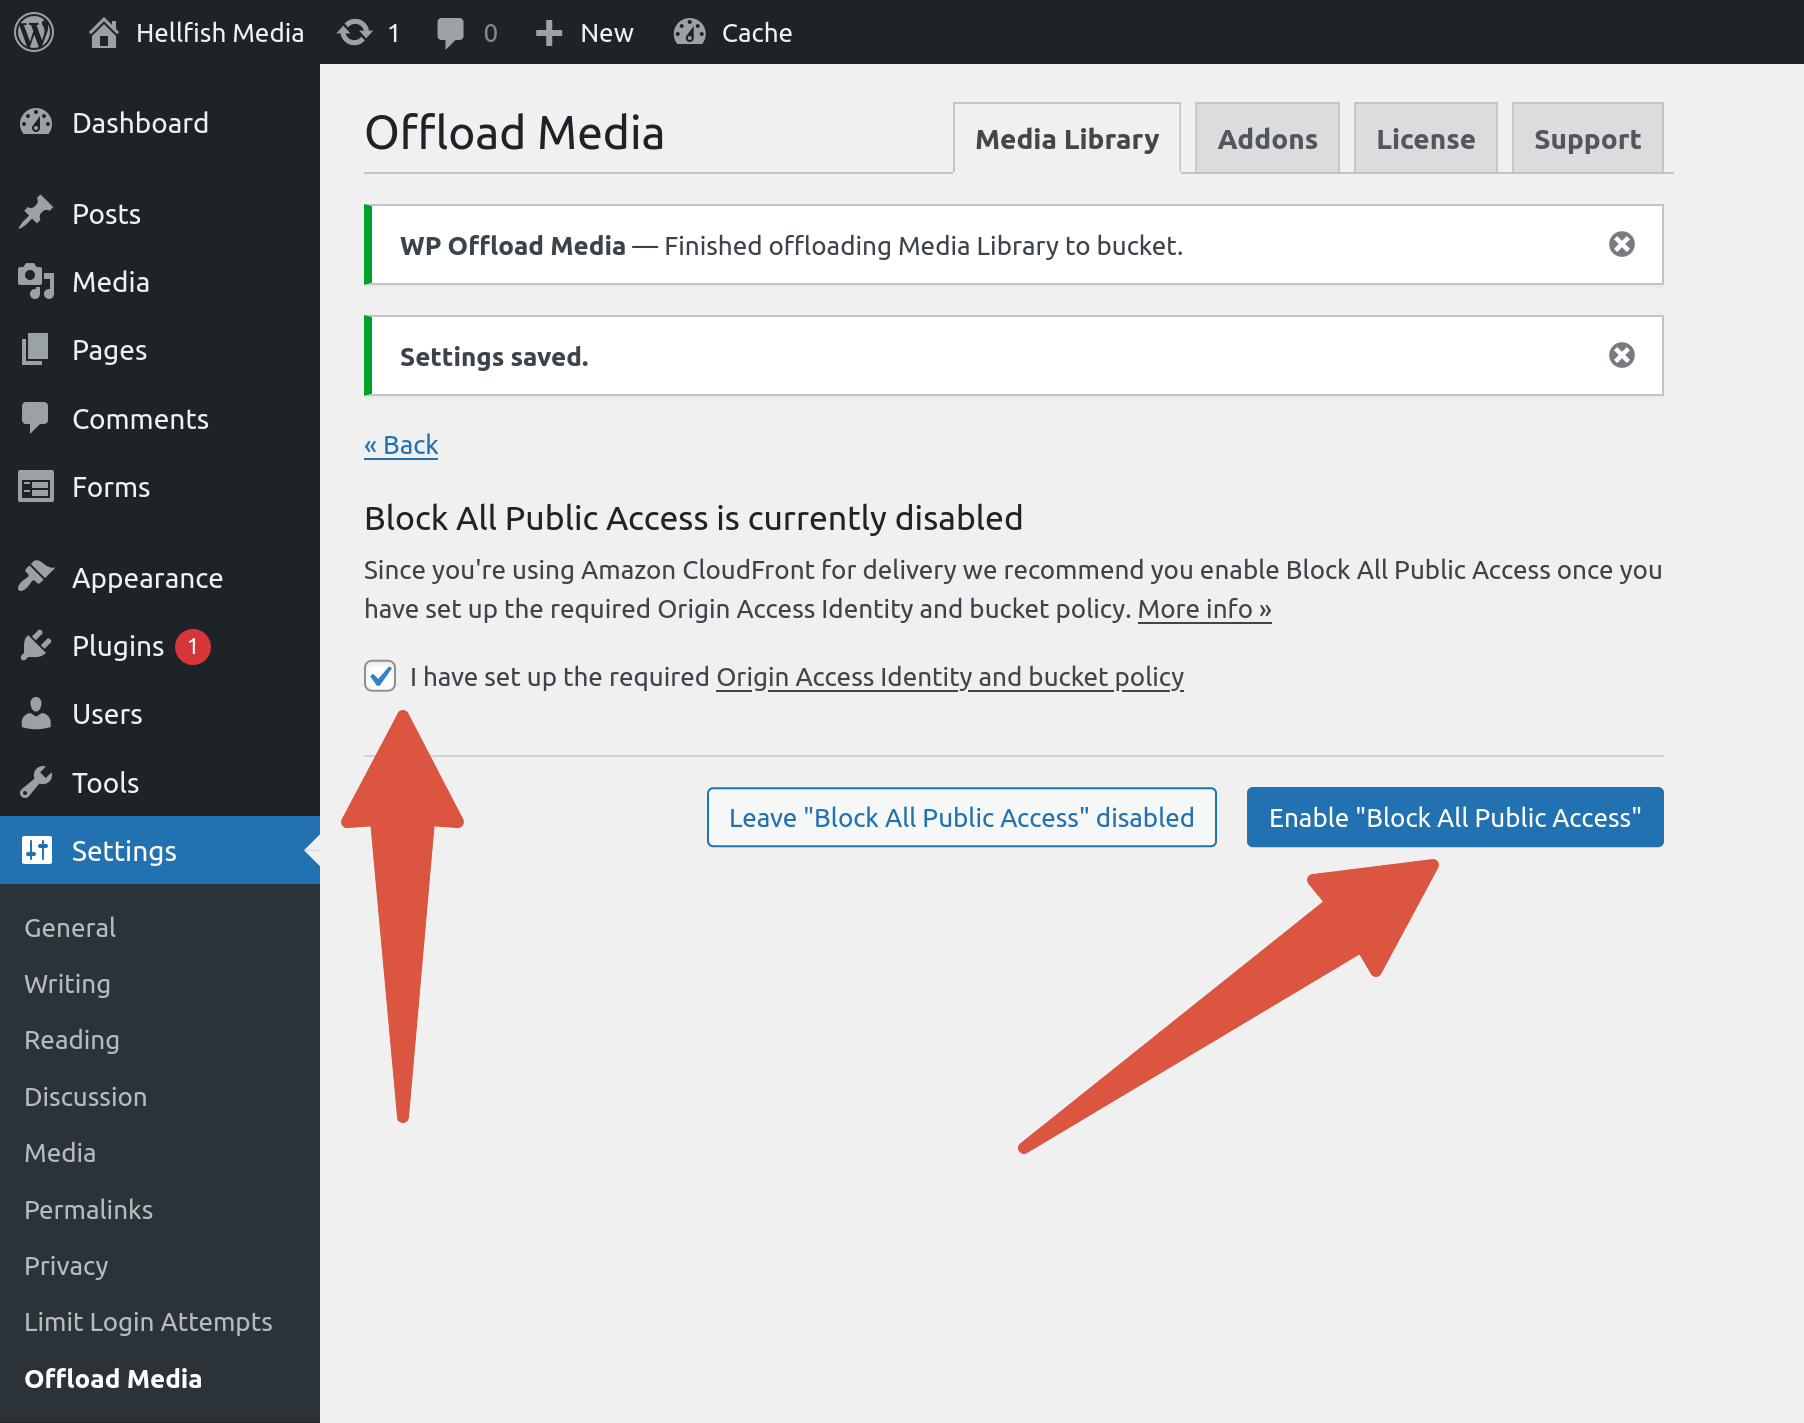 OME CloudFront Setup - Enable Block All Public Access enabled in WP Offload Media settings page